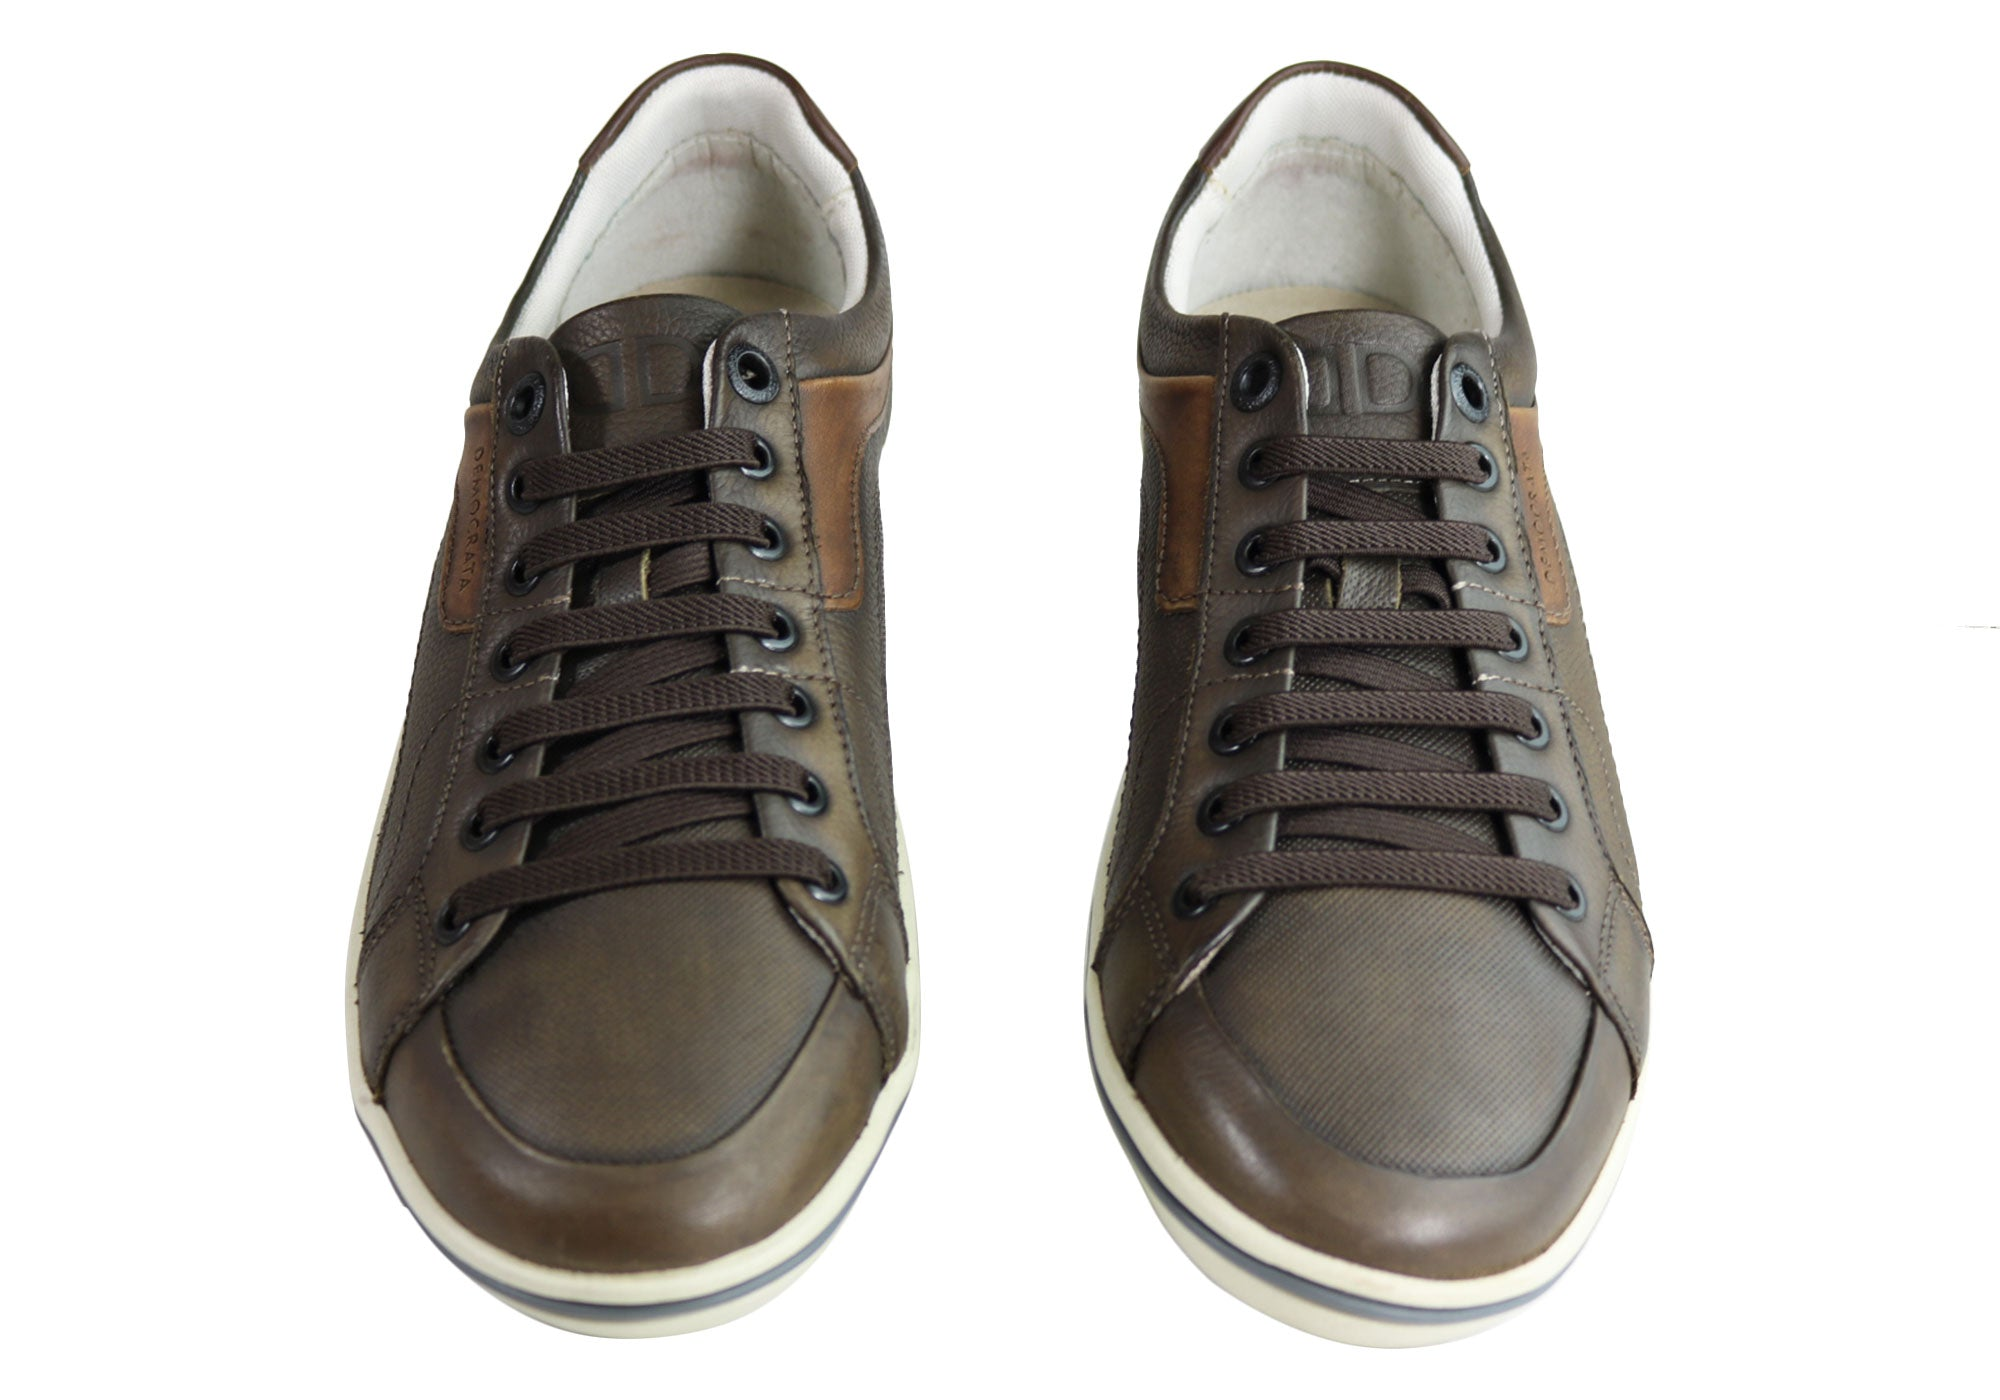 NEW-DEMOCRATA-MILES-MENS-LEATHER-SLIP-ON-CASUAL-SHOES-MADE-IN-BRAZIL thumbnail 5